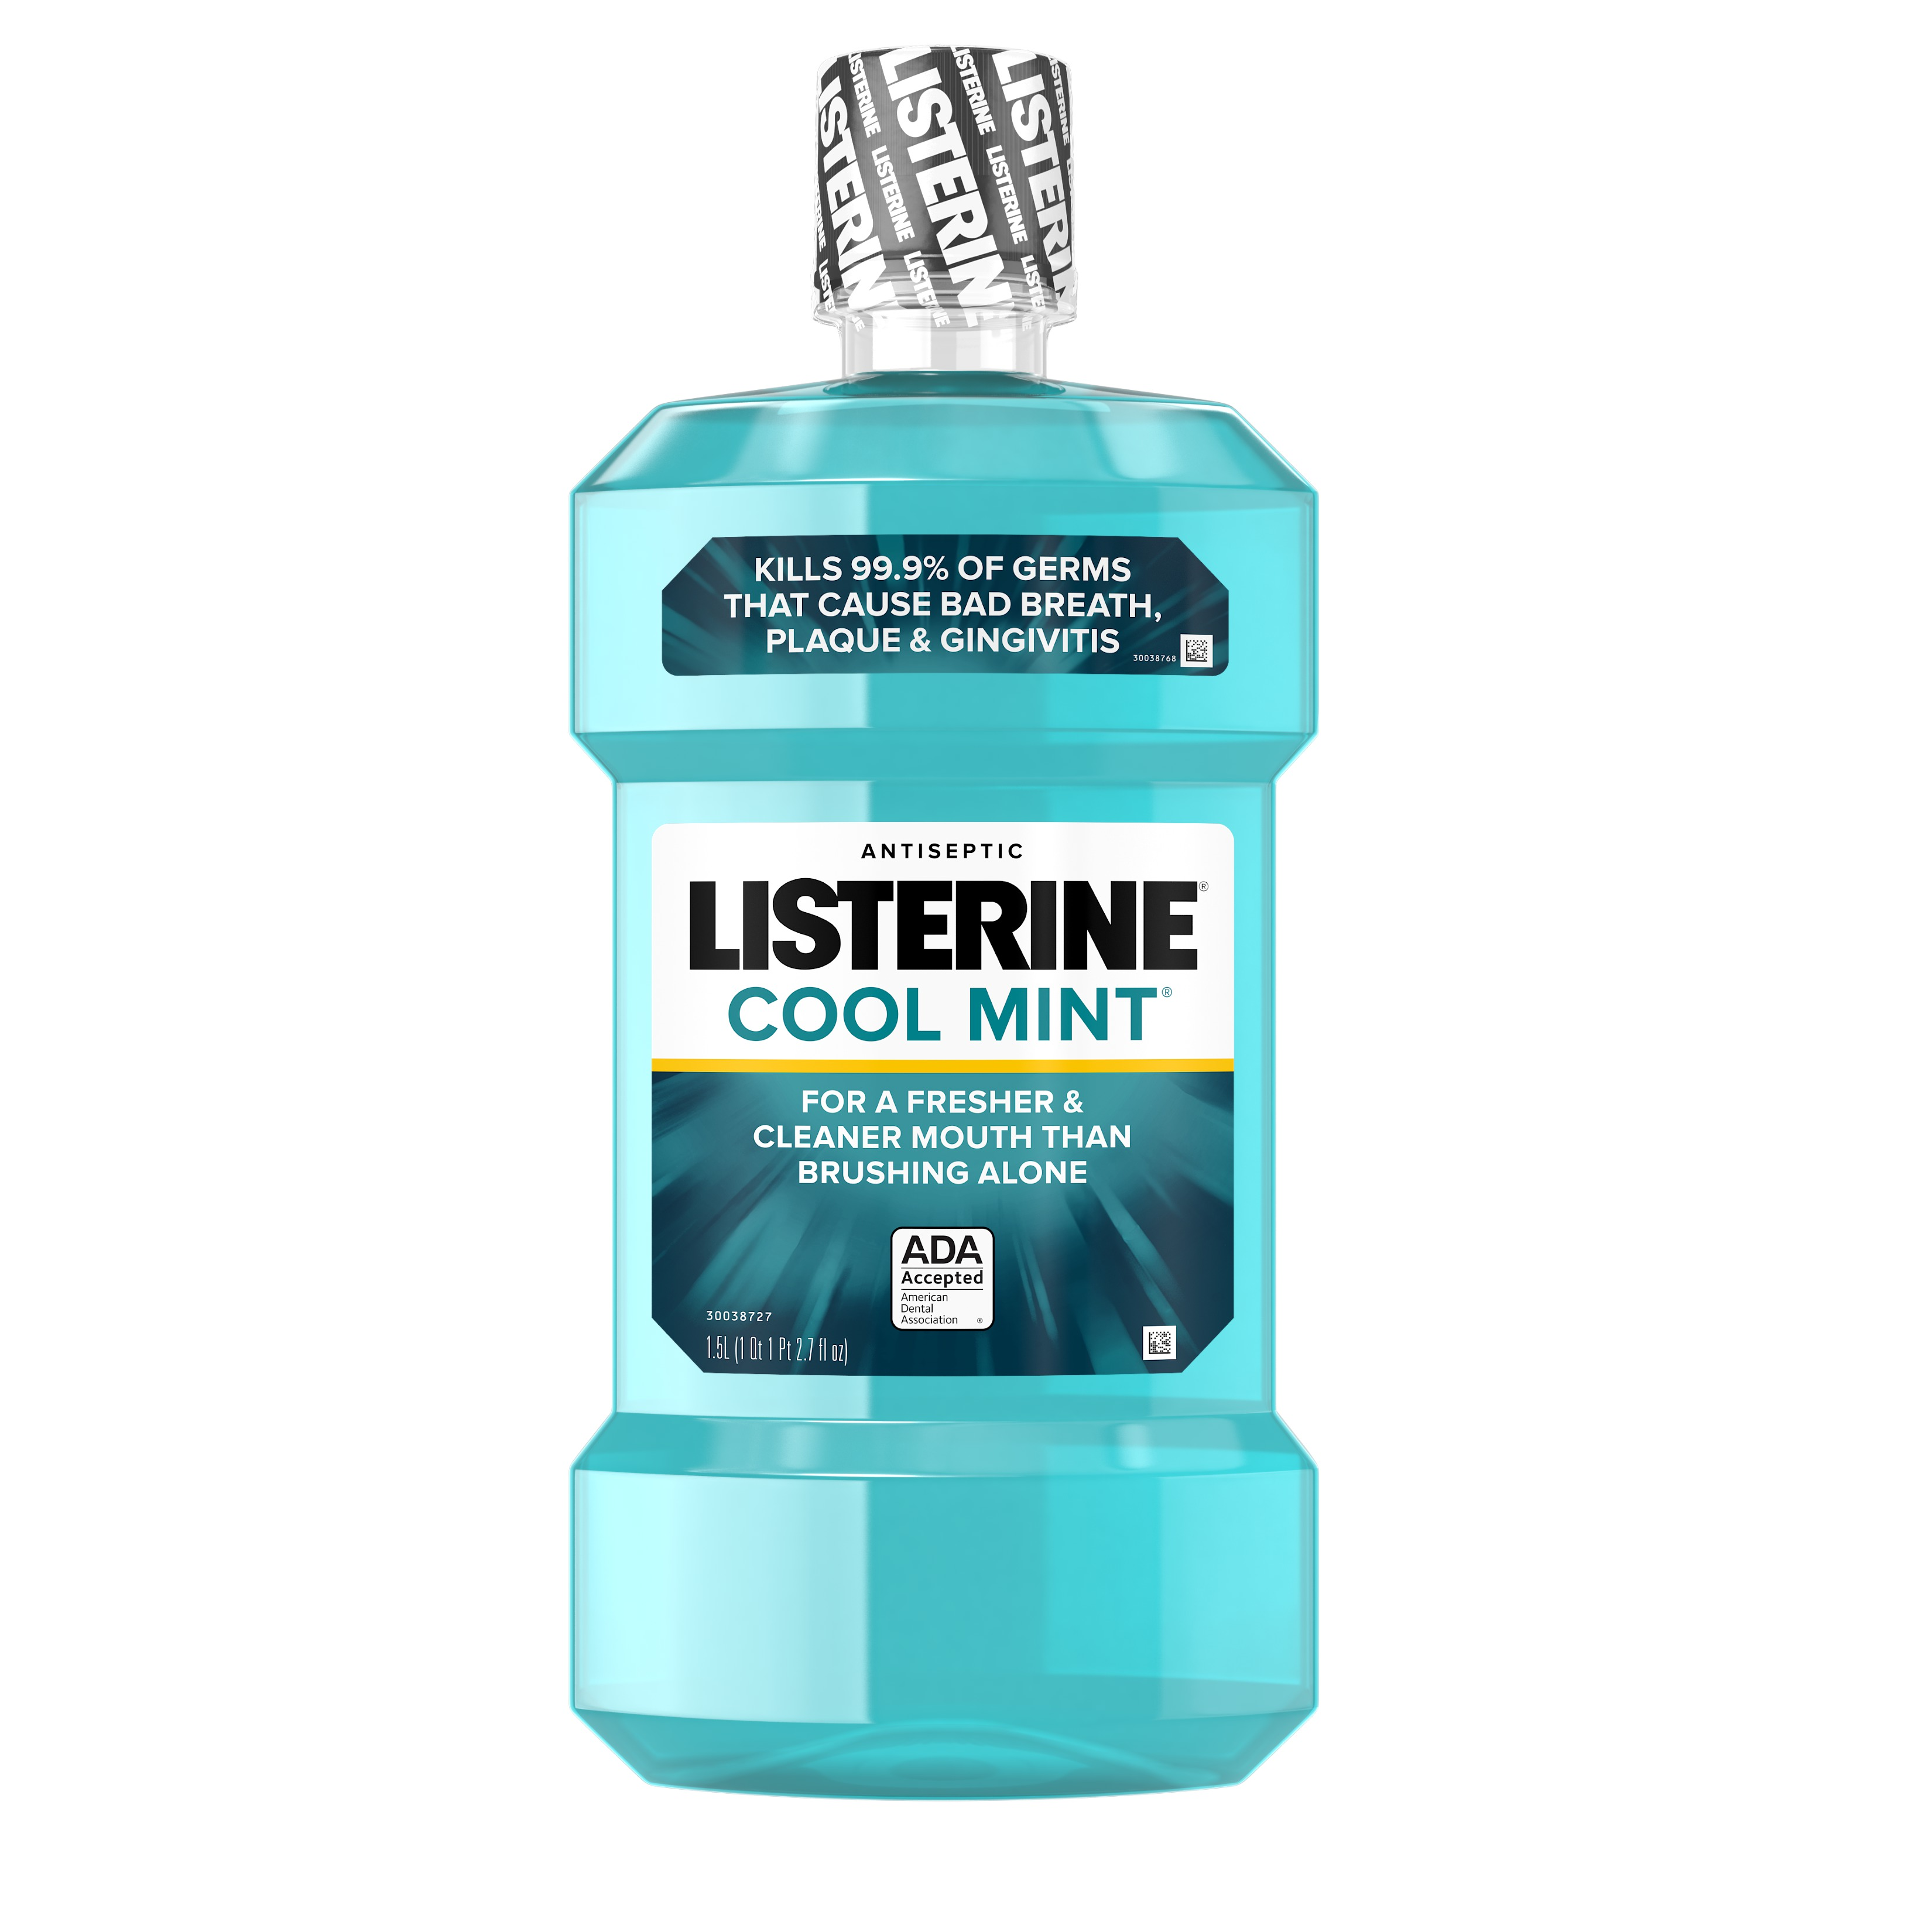 (2 Pack) Listerine Cool Mint Antiseptic Mouthwash for Bad Breath, 1.5 L